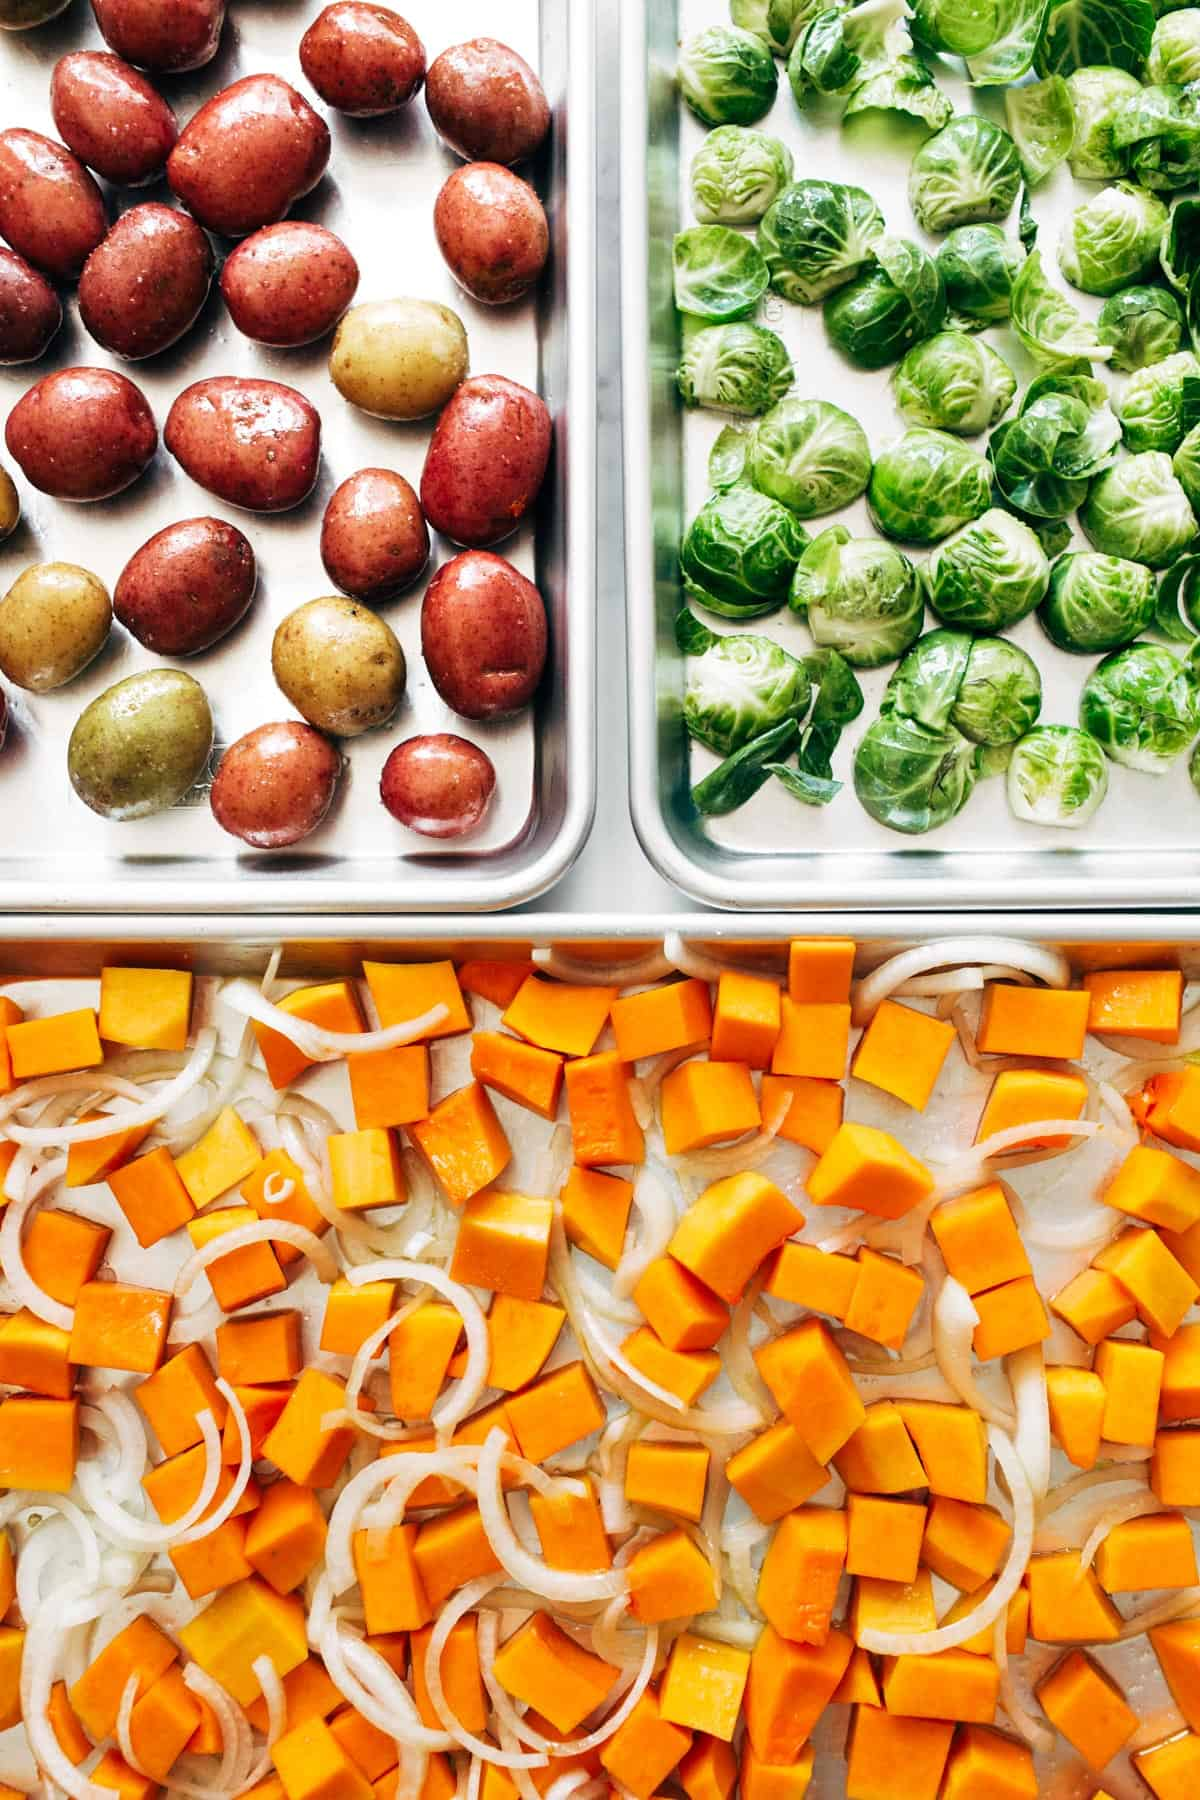 Potatoes, brussels sprouts, and squash on sheet pans.